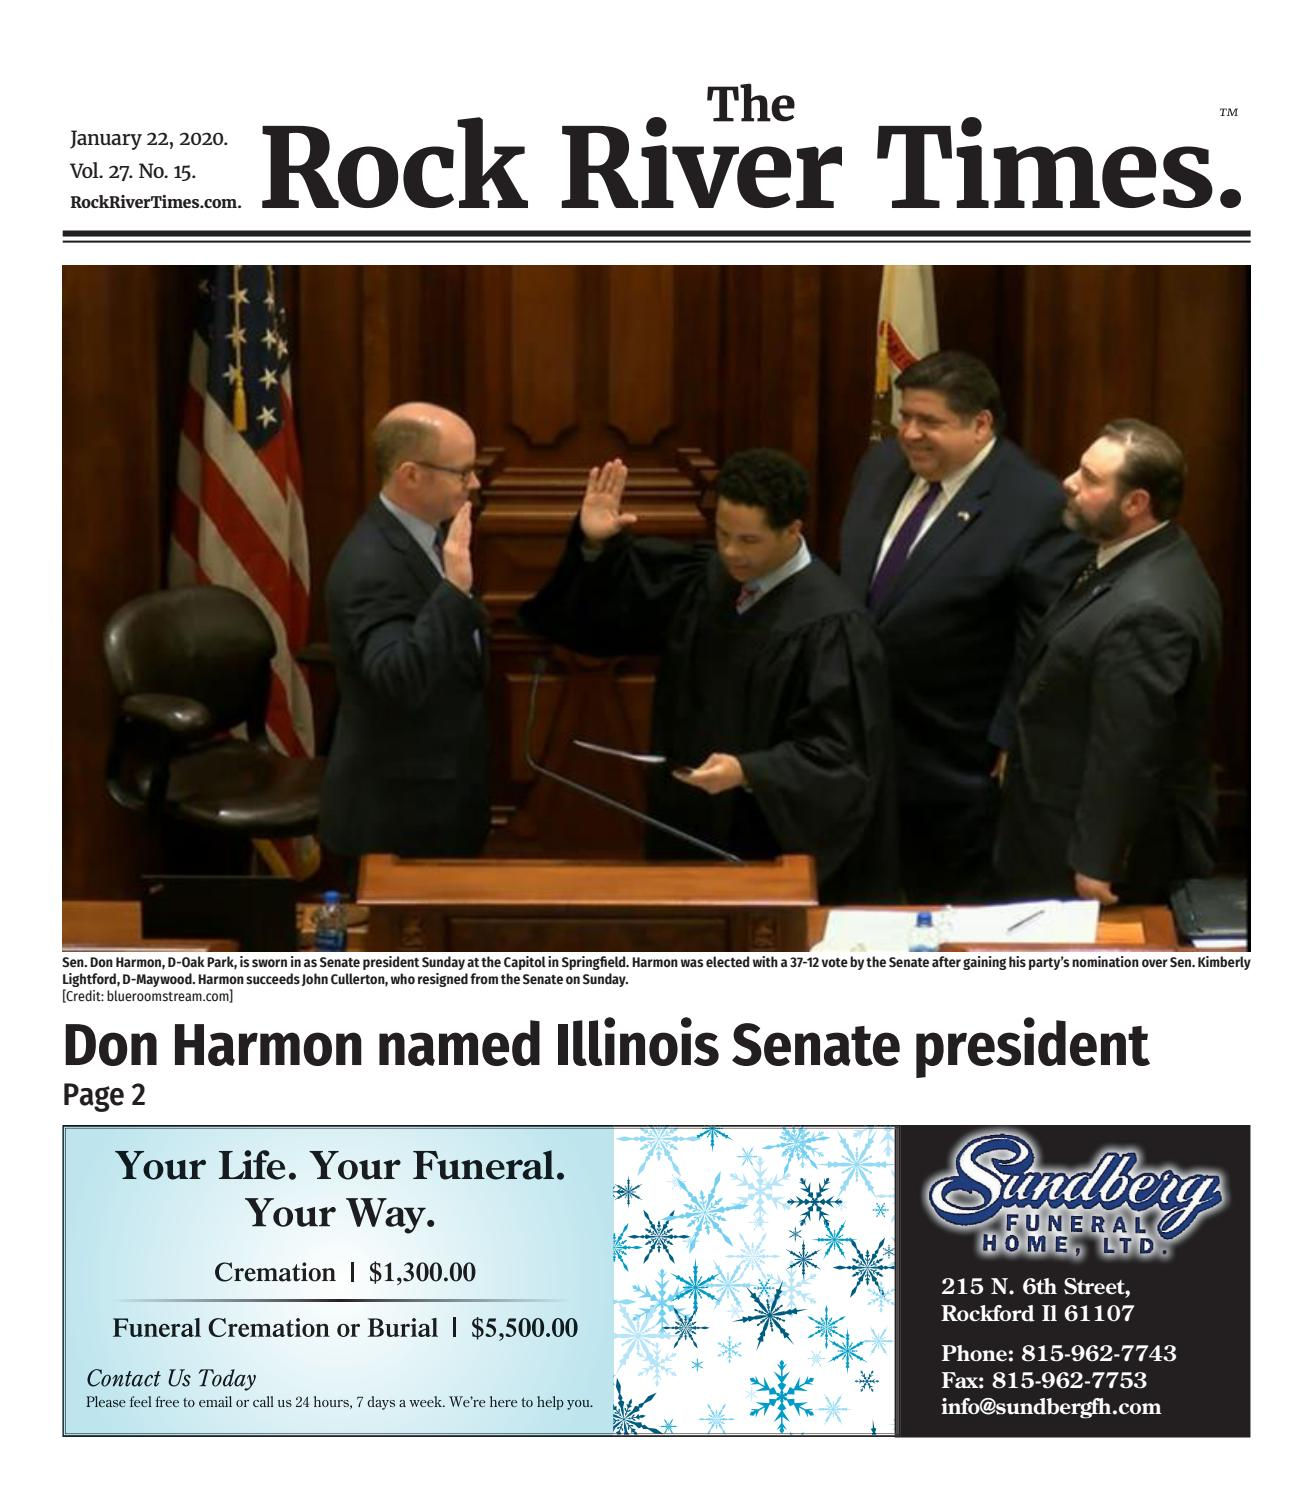 The Rock River Times January 22 2020 By Rockrivertimes7 Issuu